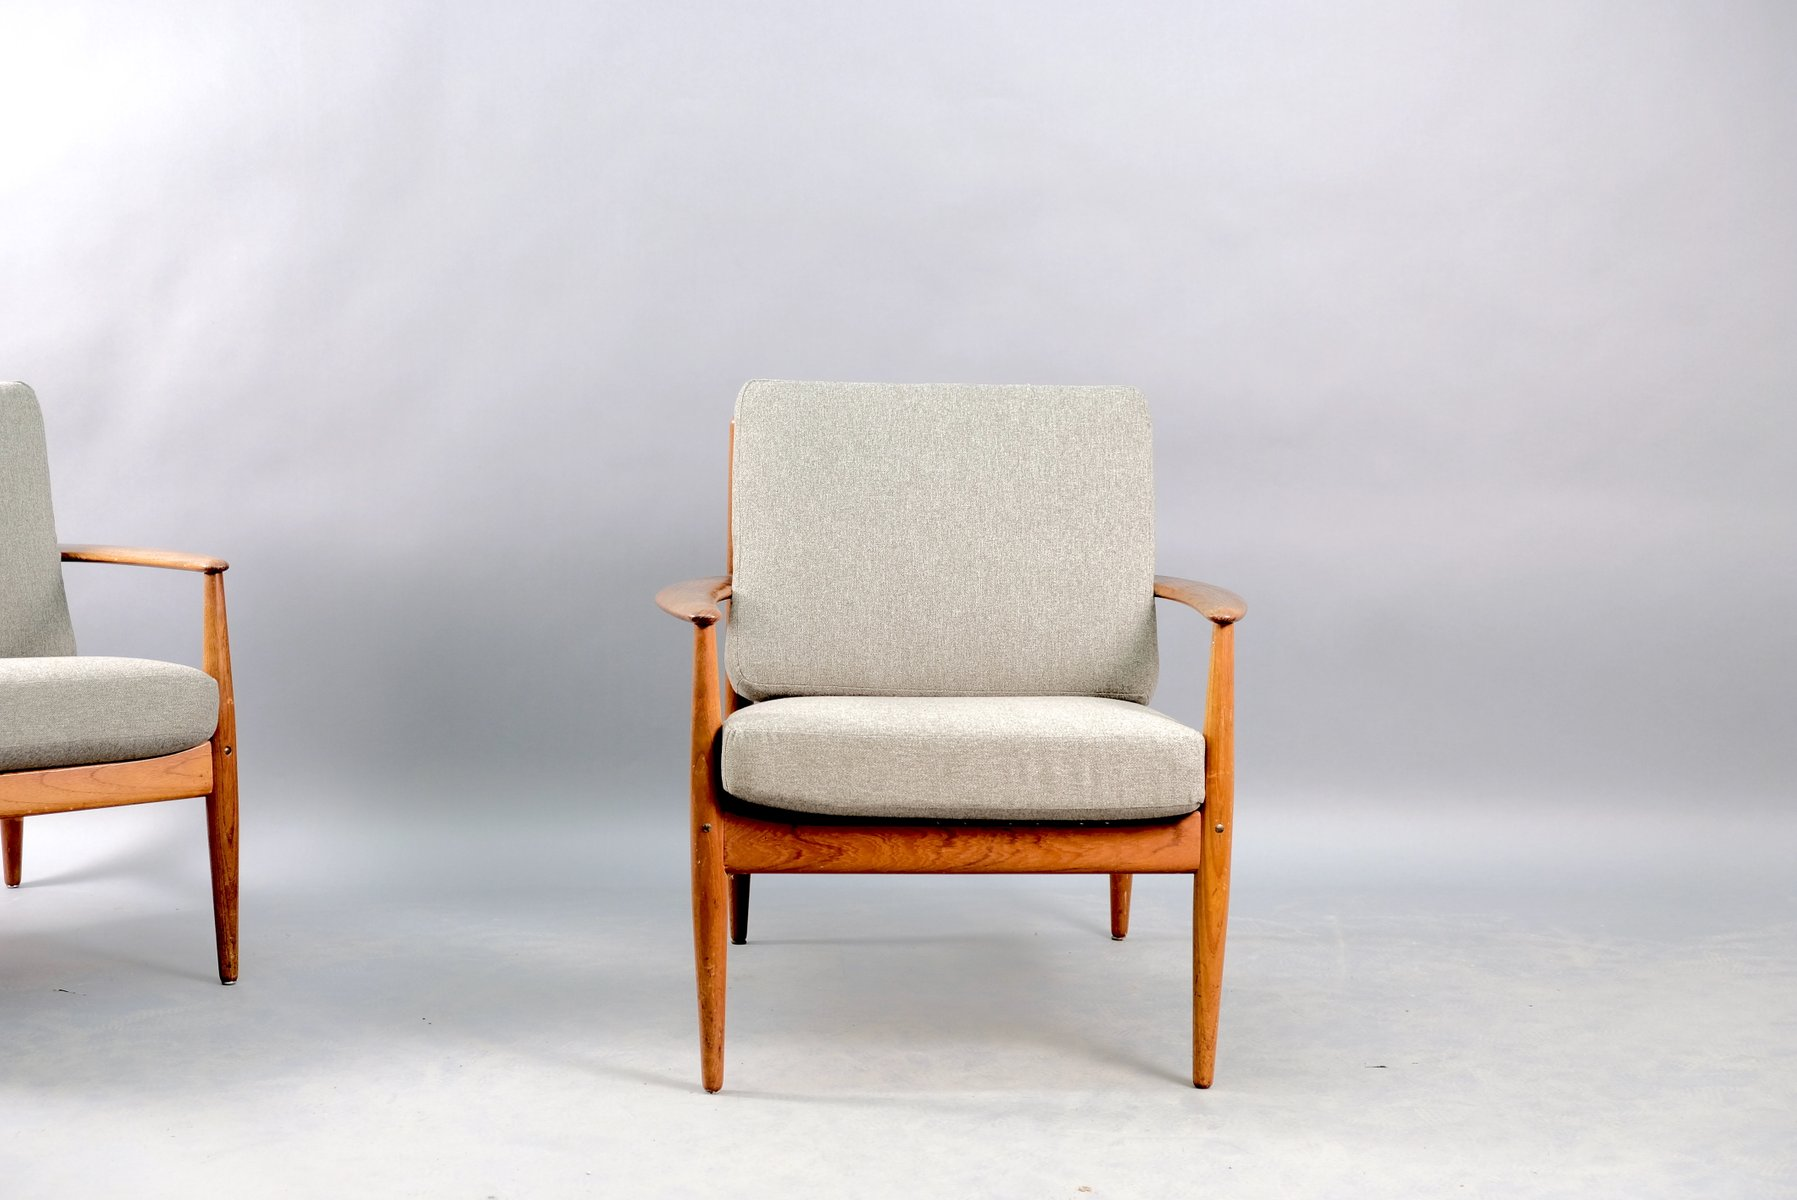 Mid-Century Danish Teak Lounge Chairs by Grete Jalk for France & Søn / France & Daverkosen, Set of 2